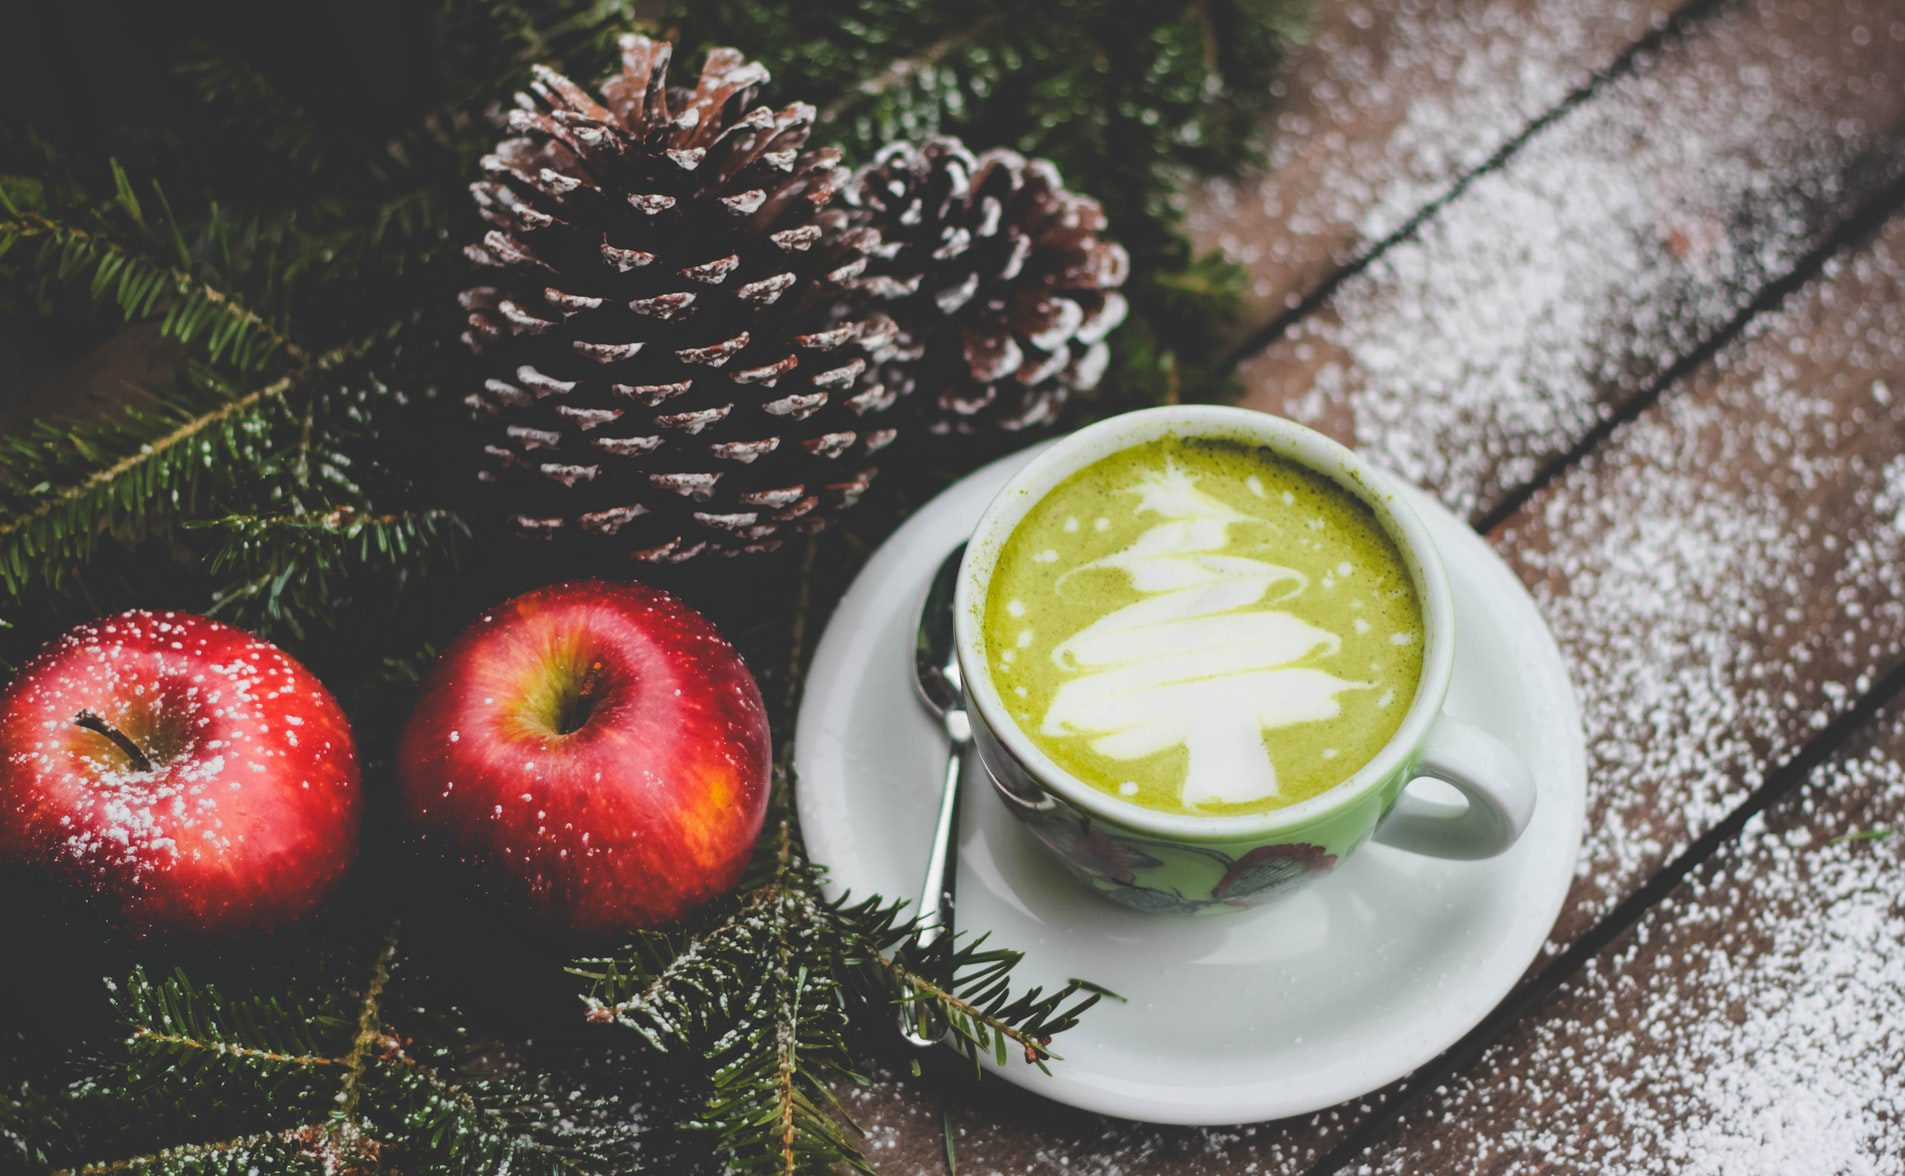 Matcha Latte with latte art of a christmas tree